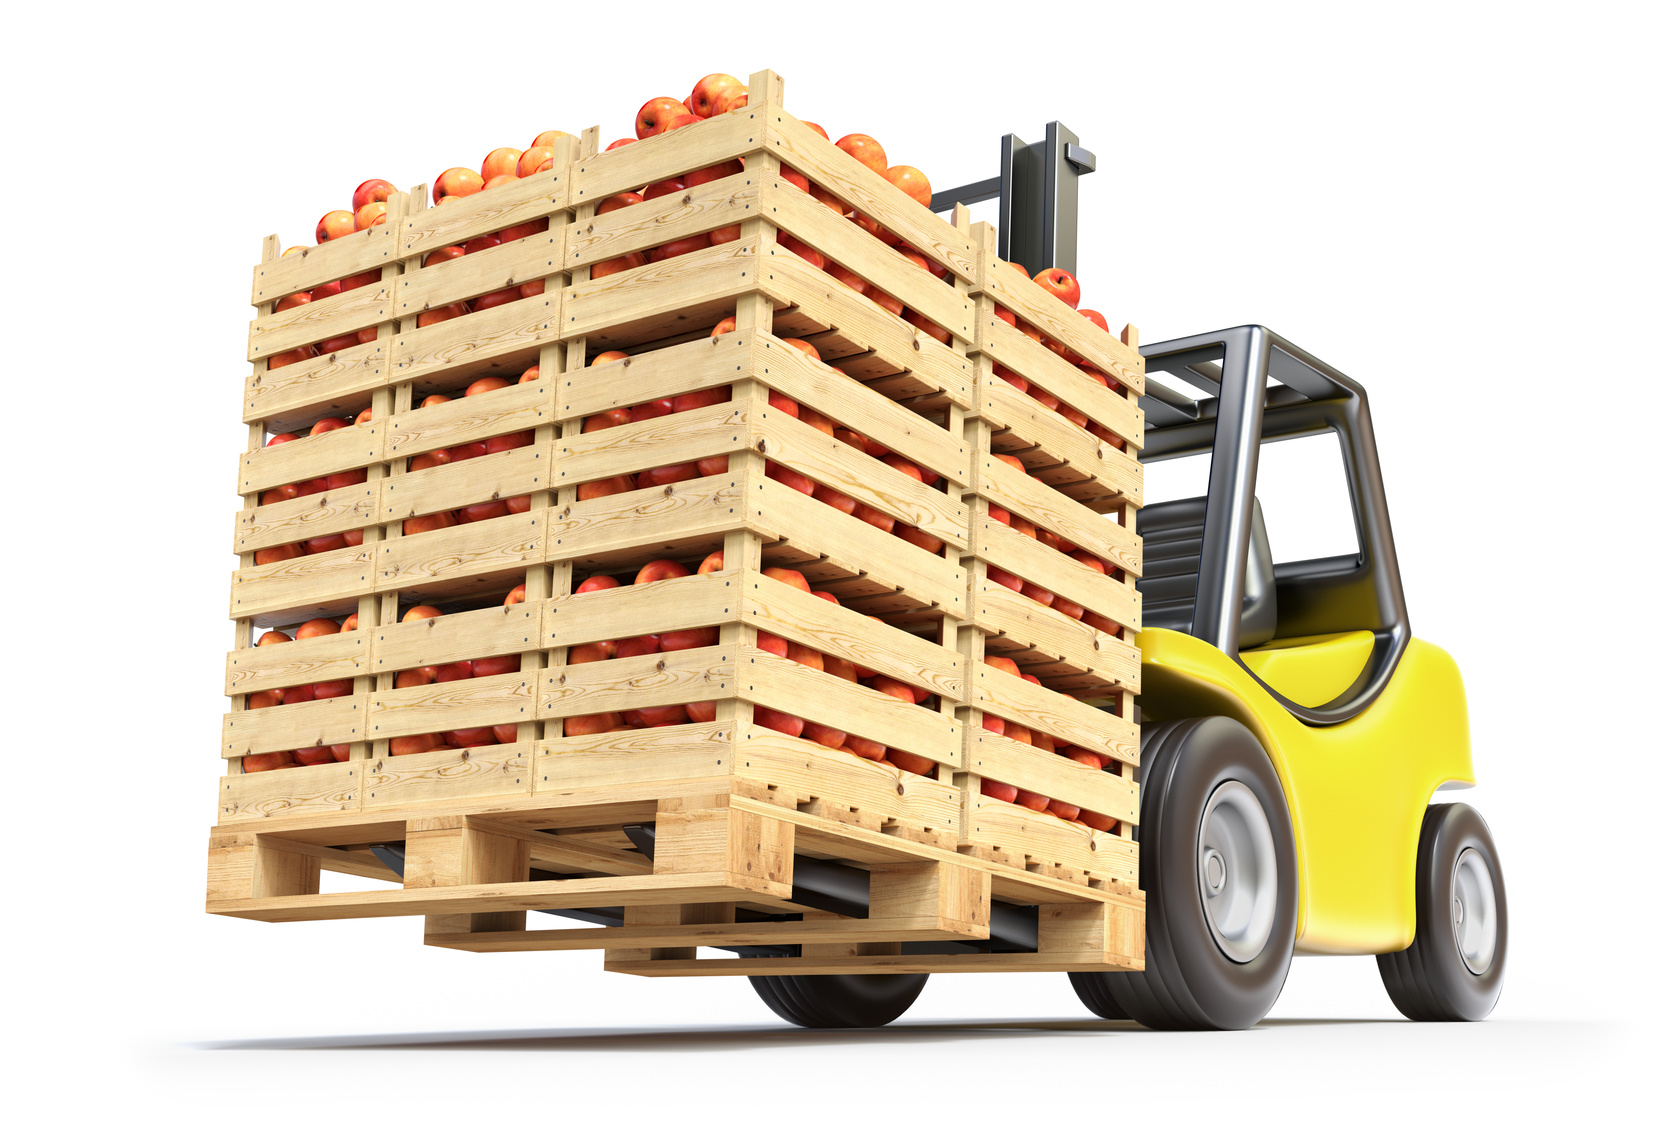 Major Fruit & Vegetable Wholesaler